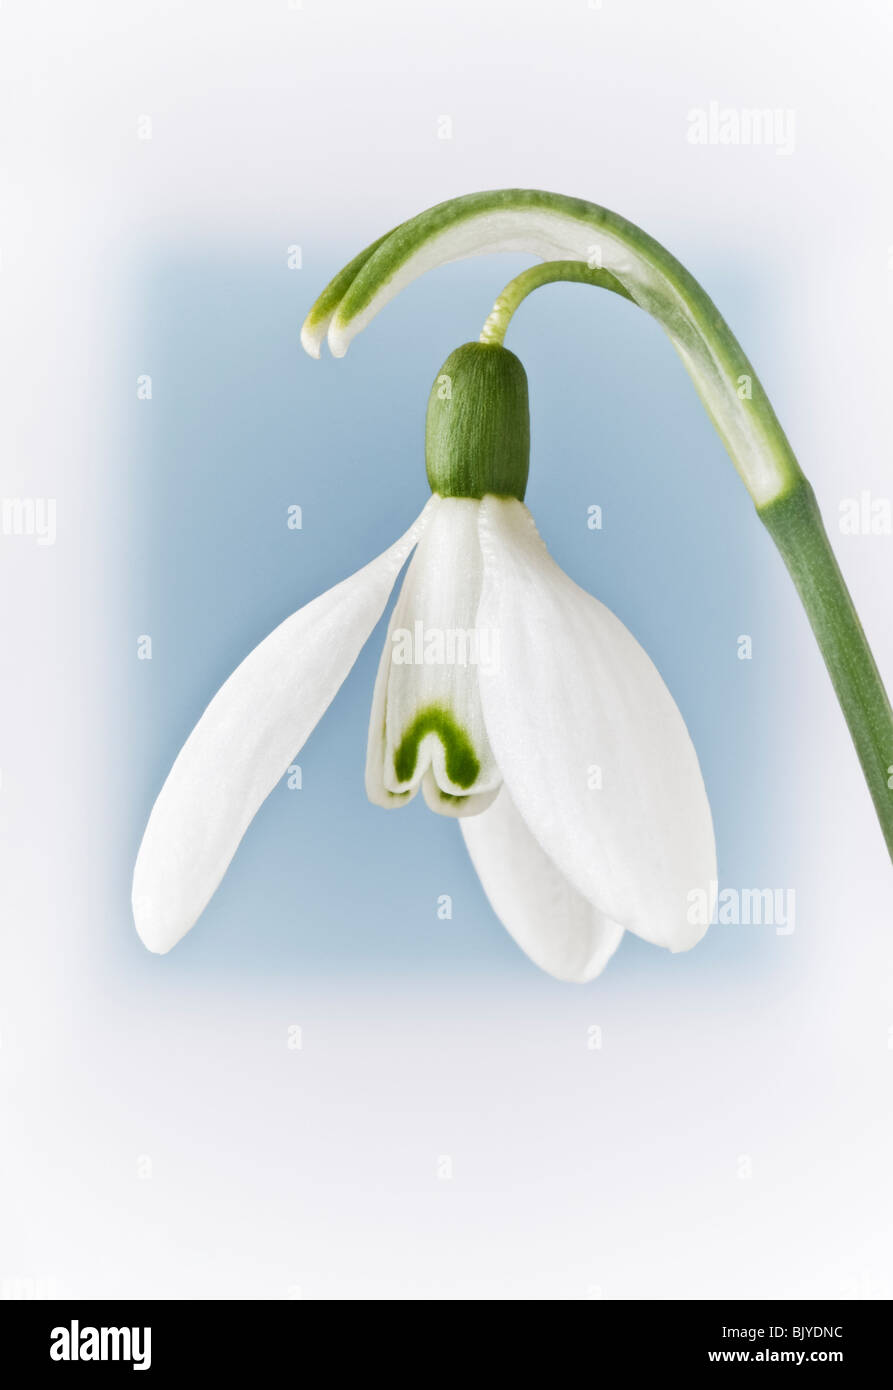 Snowdrop GALANTHUS blurred blue background - Stock Image